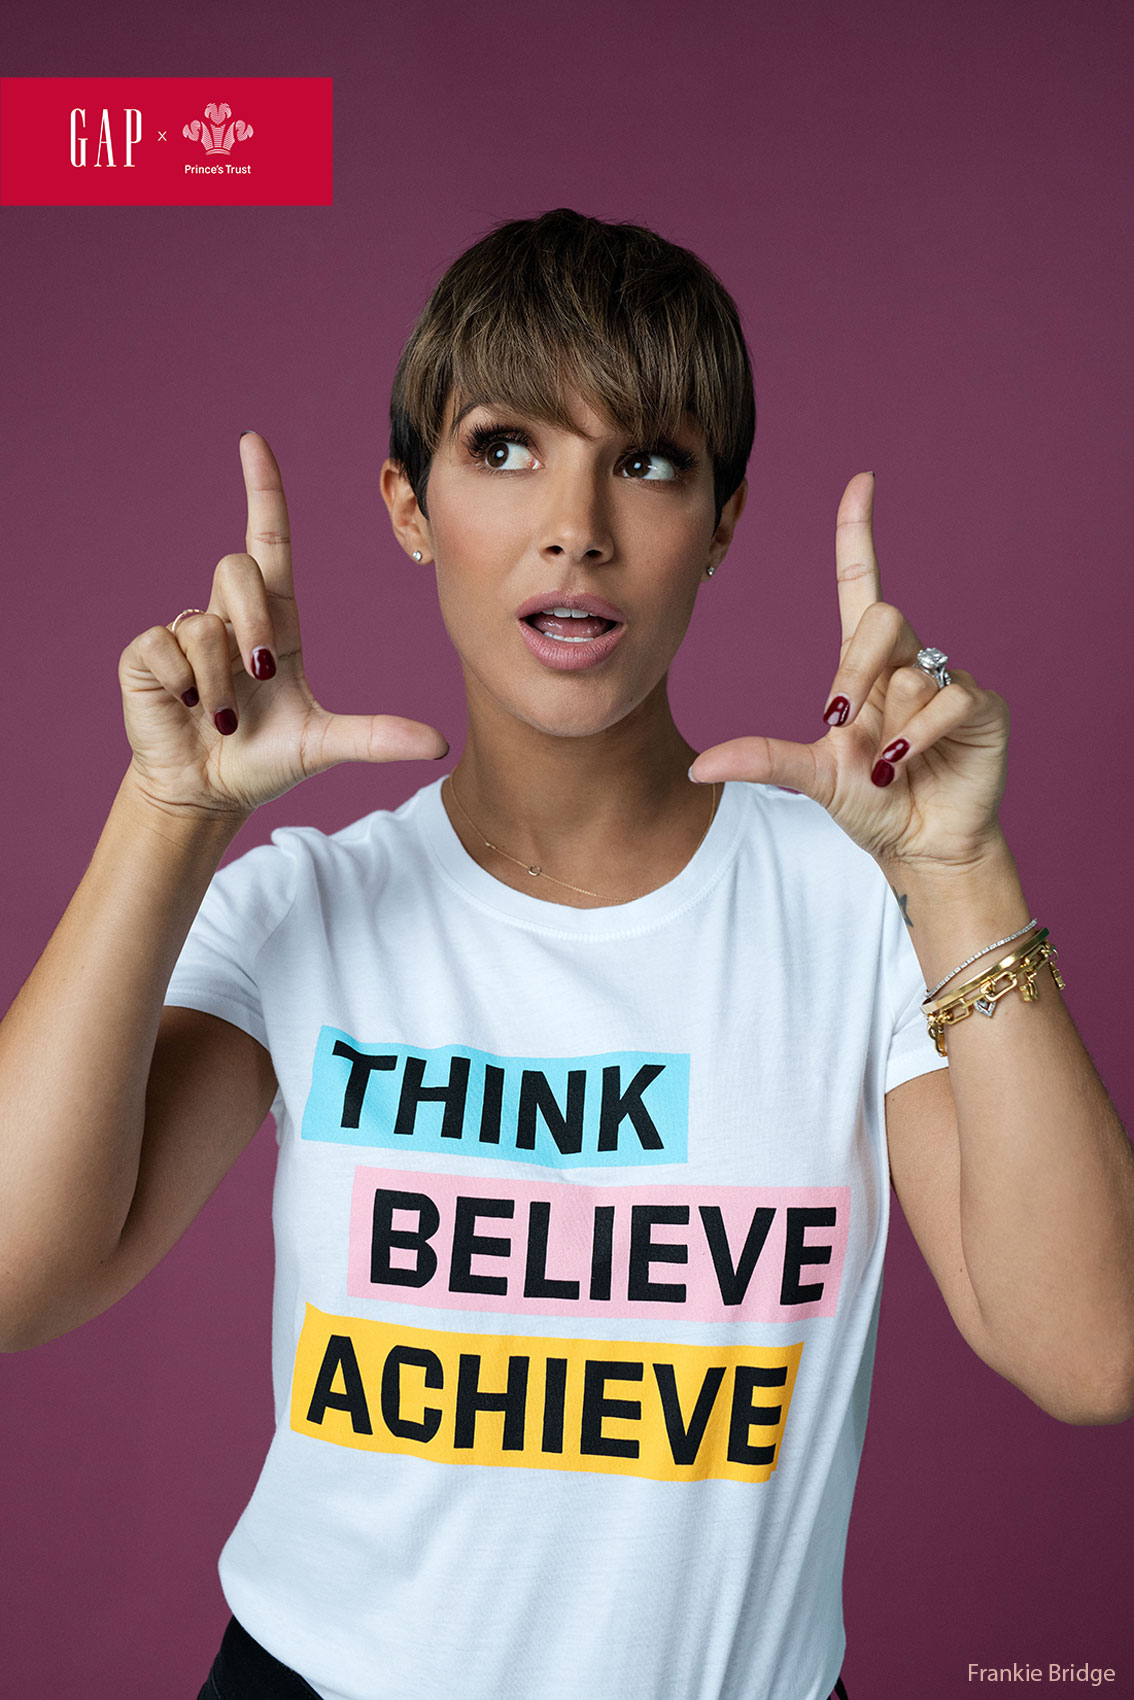 Frankie Bridge celebrity portrait commercial